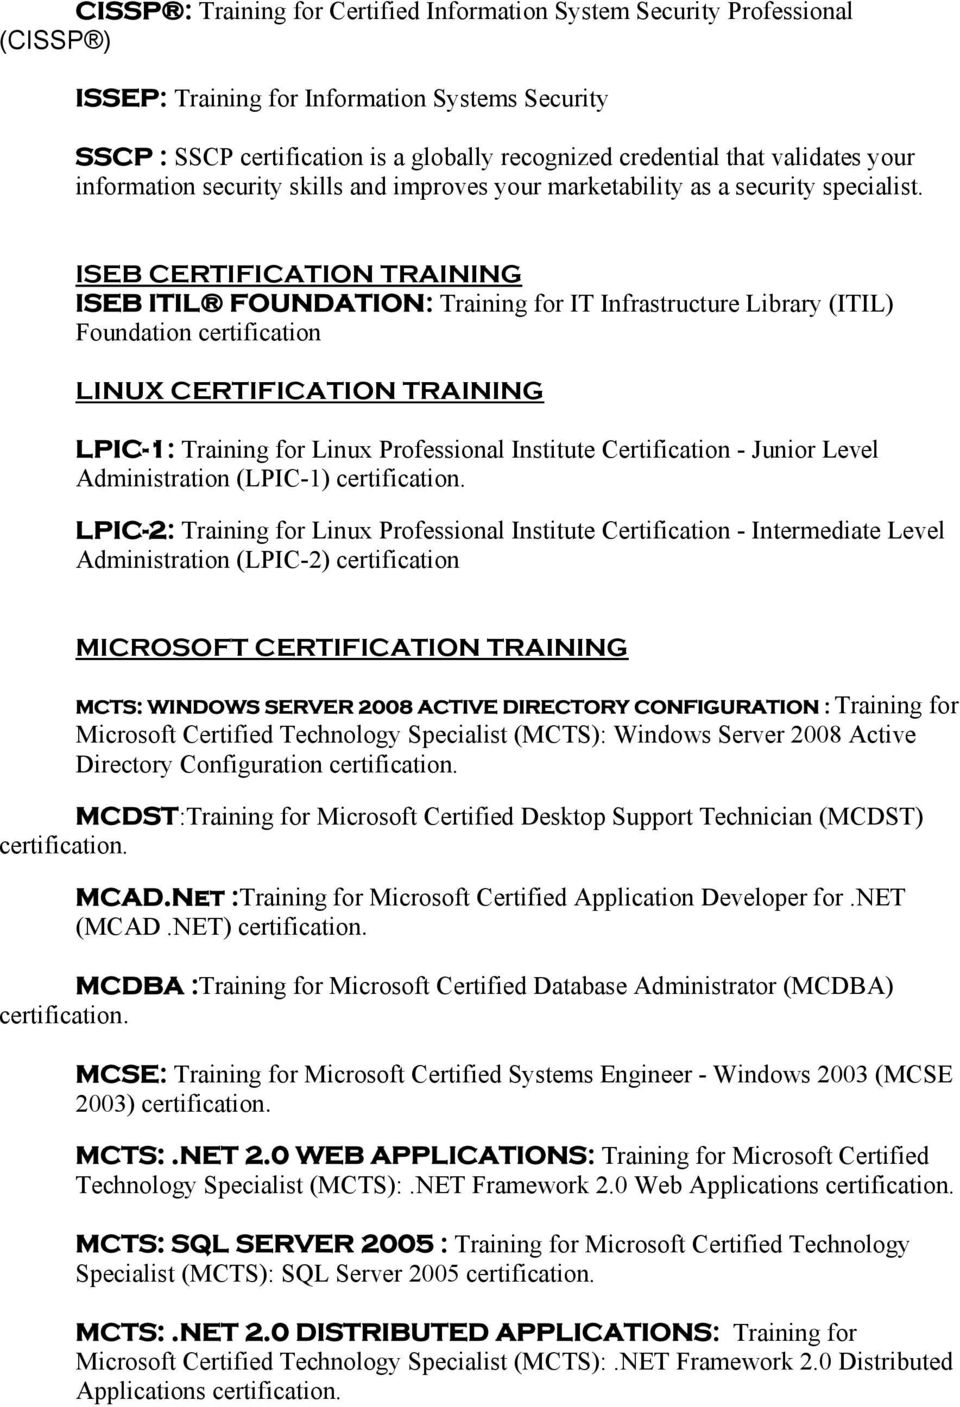 ISEB CERTIFICATION TRAINING ISEB ITIL FOUNDATION: Training for IT Infrastructure Library (ITIL) Foundation certification LINUX CERTIFICATION TRAINING LPIC-1: Training for Linux Professional Institute